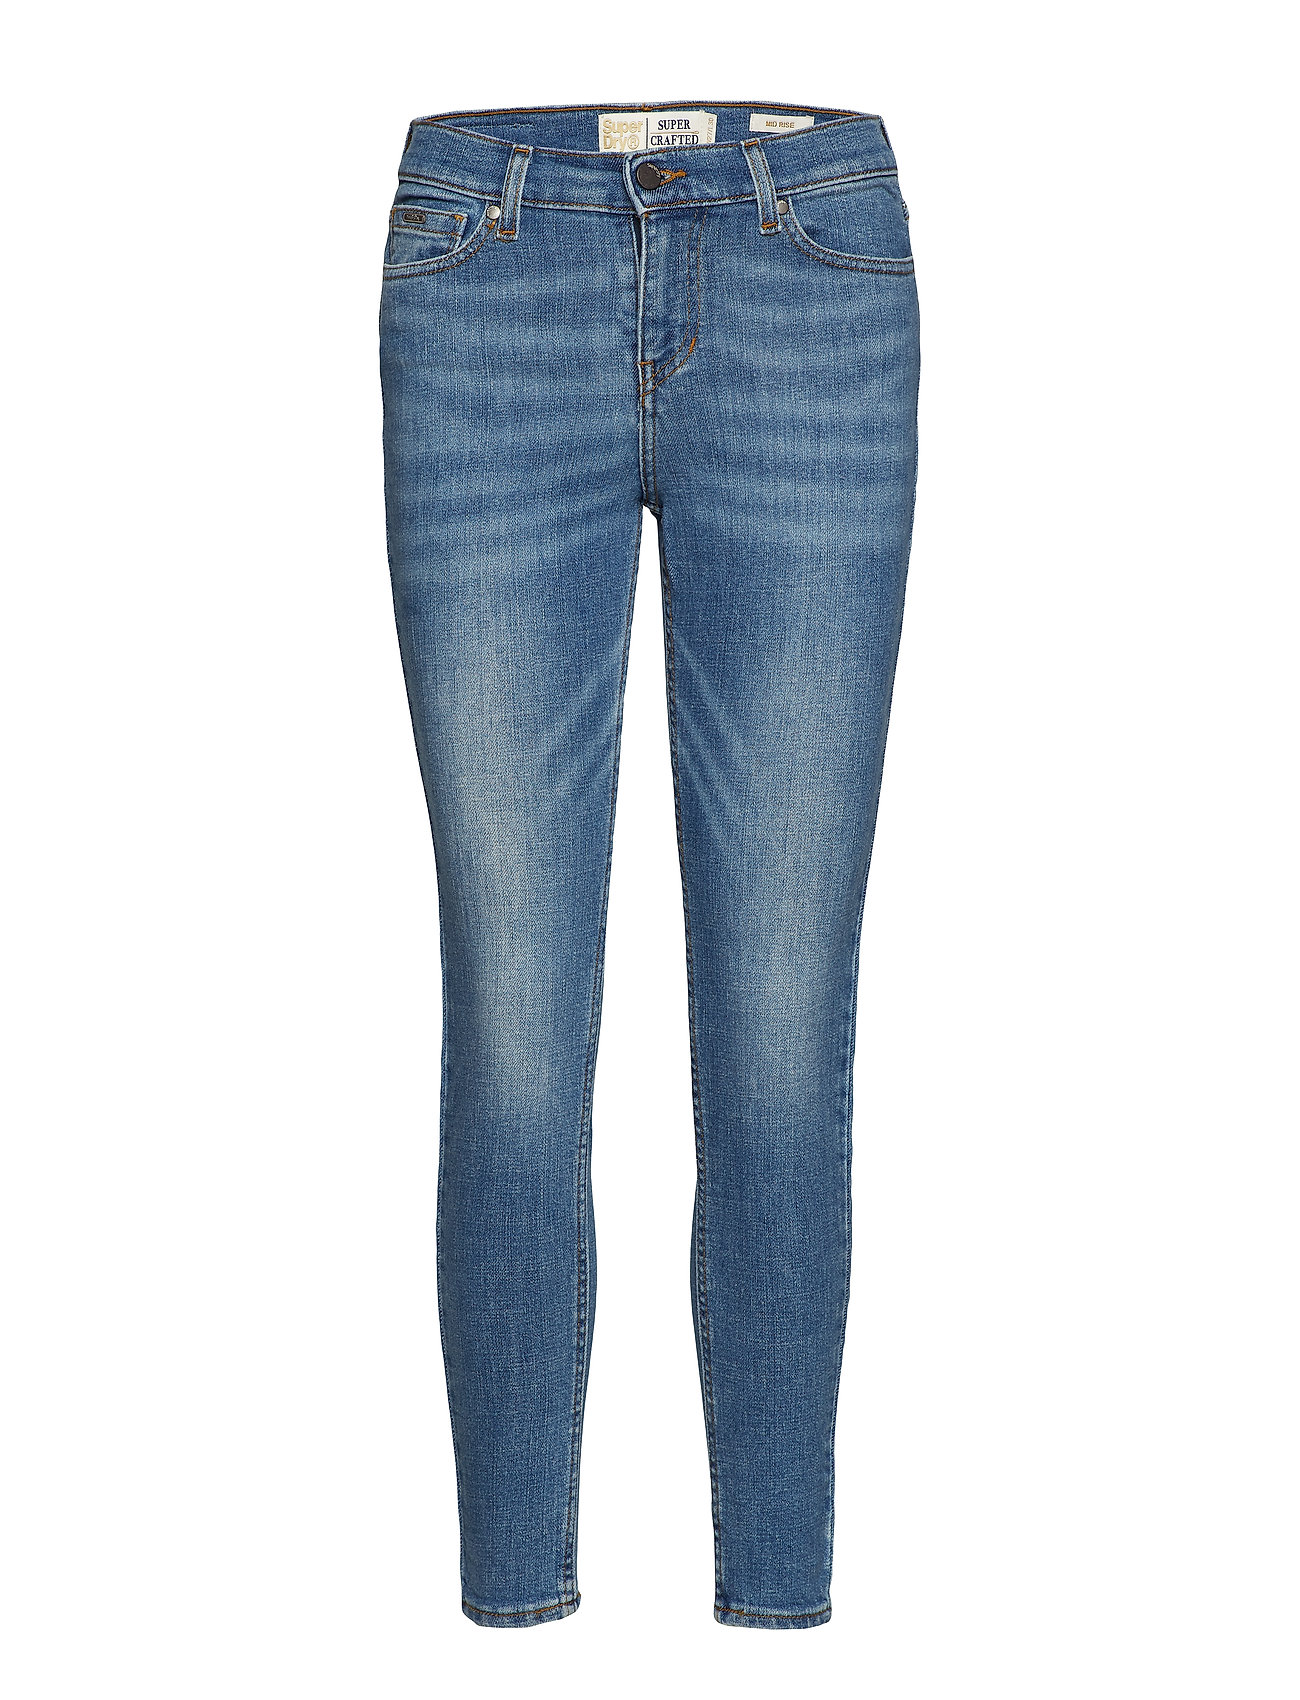 Superdry SUPER CRAFTED - MID HAZE BLUE